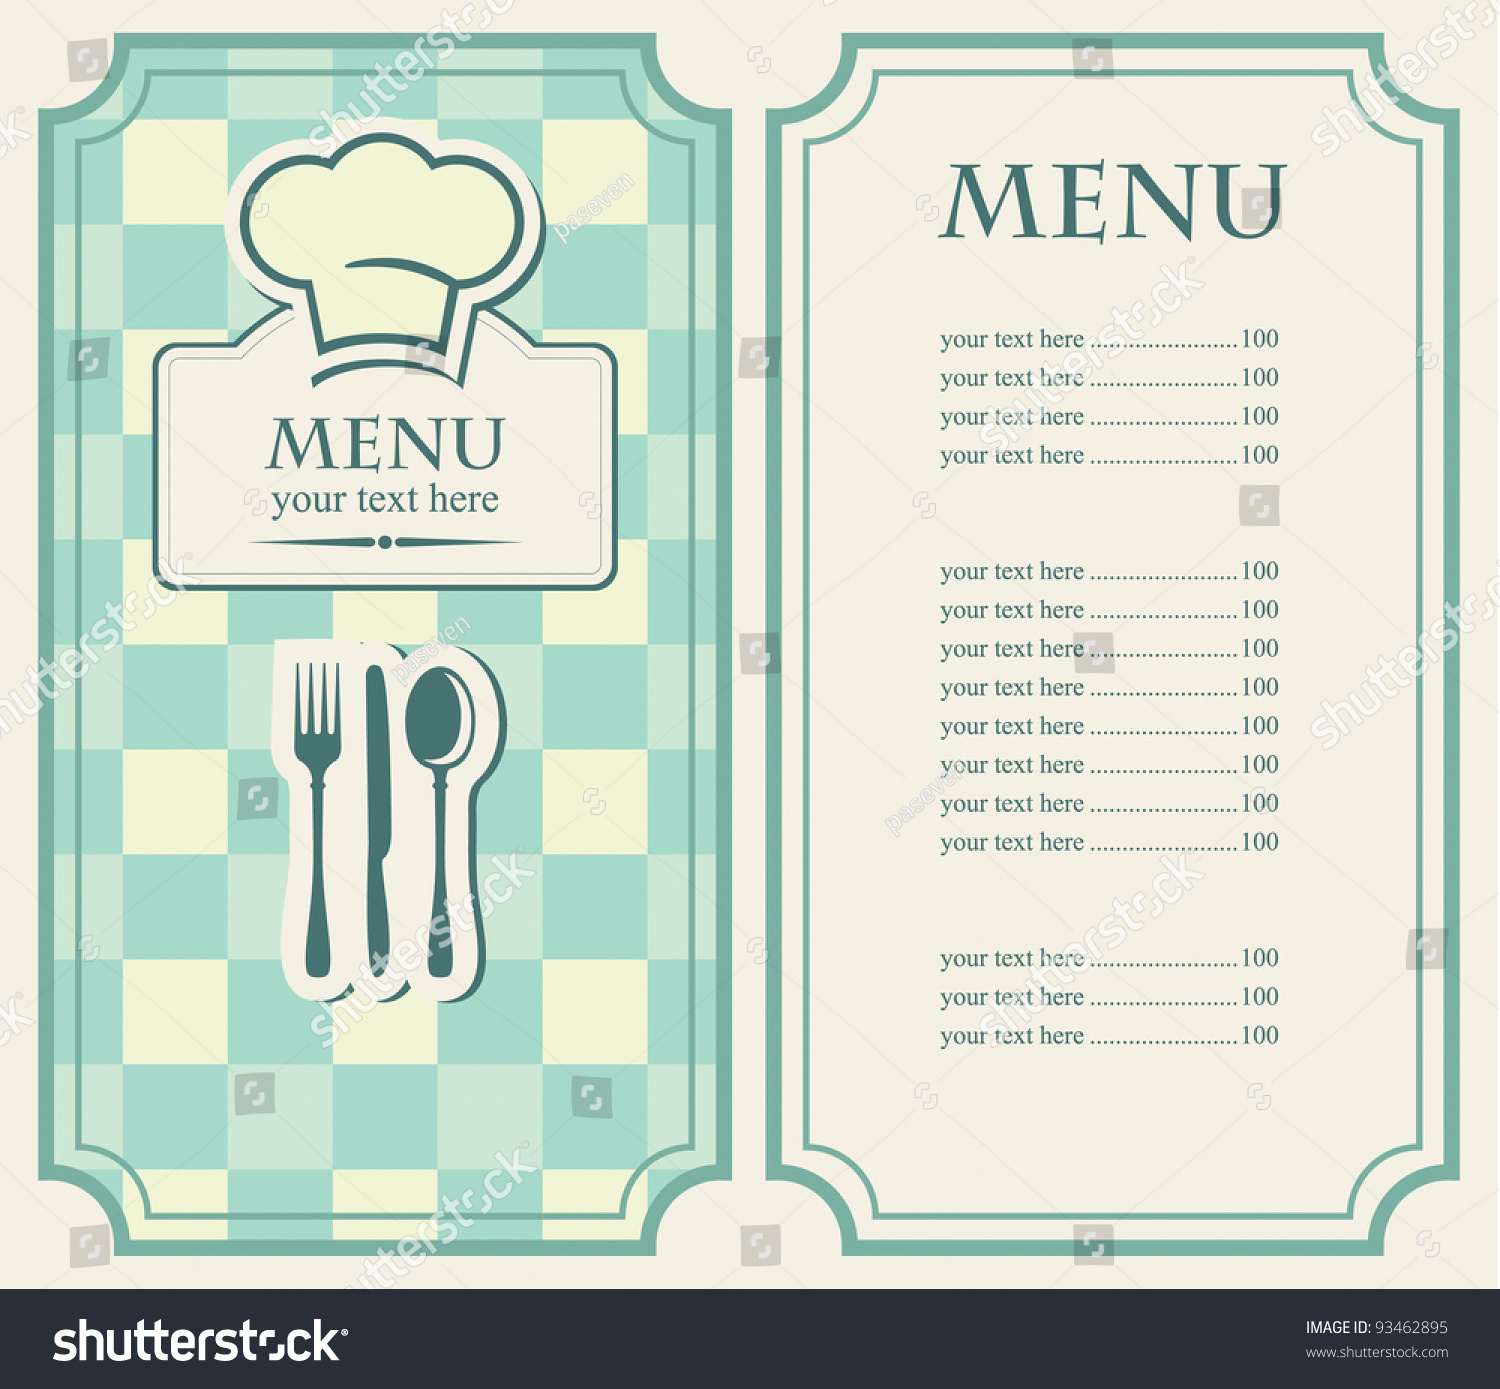 Green menu for a cafe or restaurant stock vector for Simple html menu template